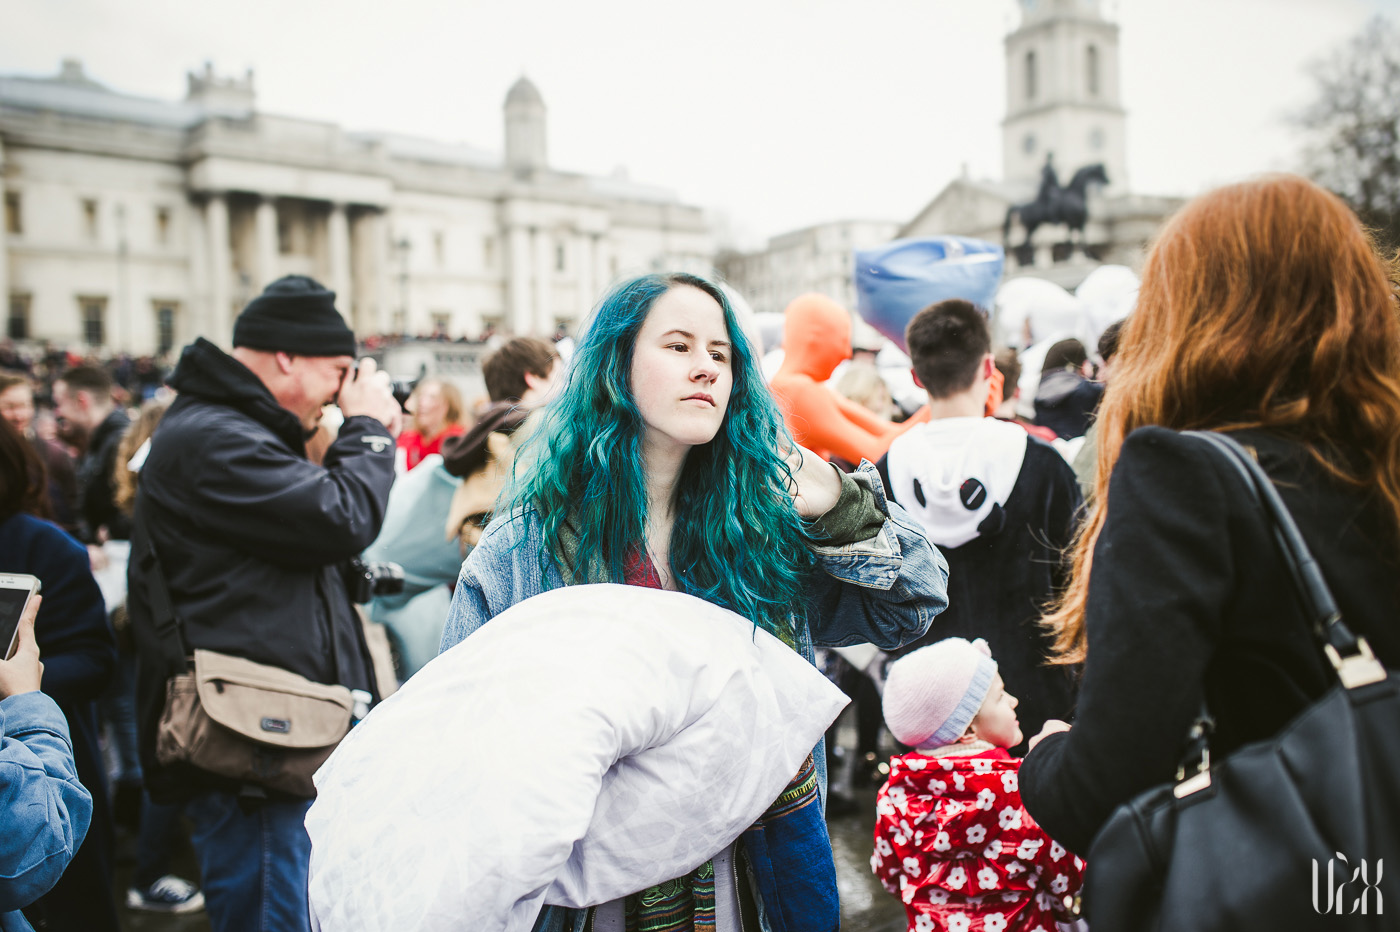 International Pillow Fight Day In London 2015 Street Photography Pagalviu Musis 07